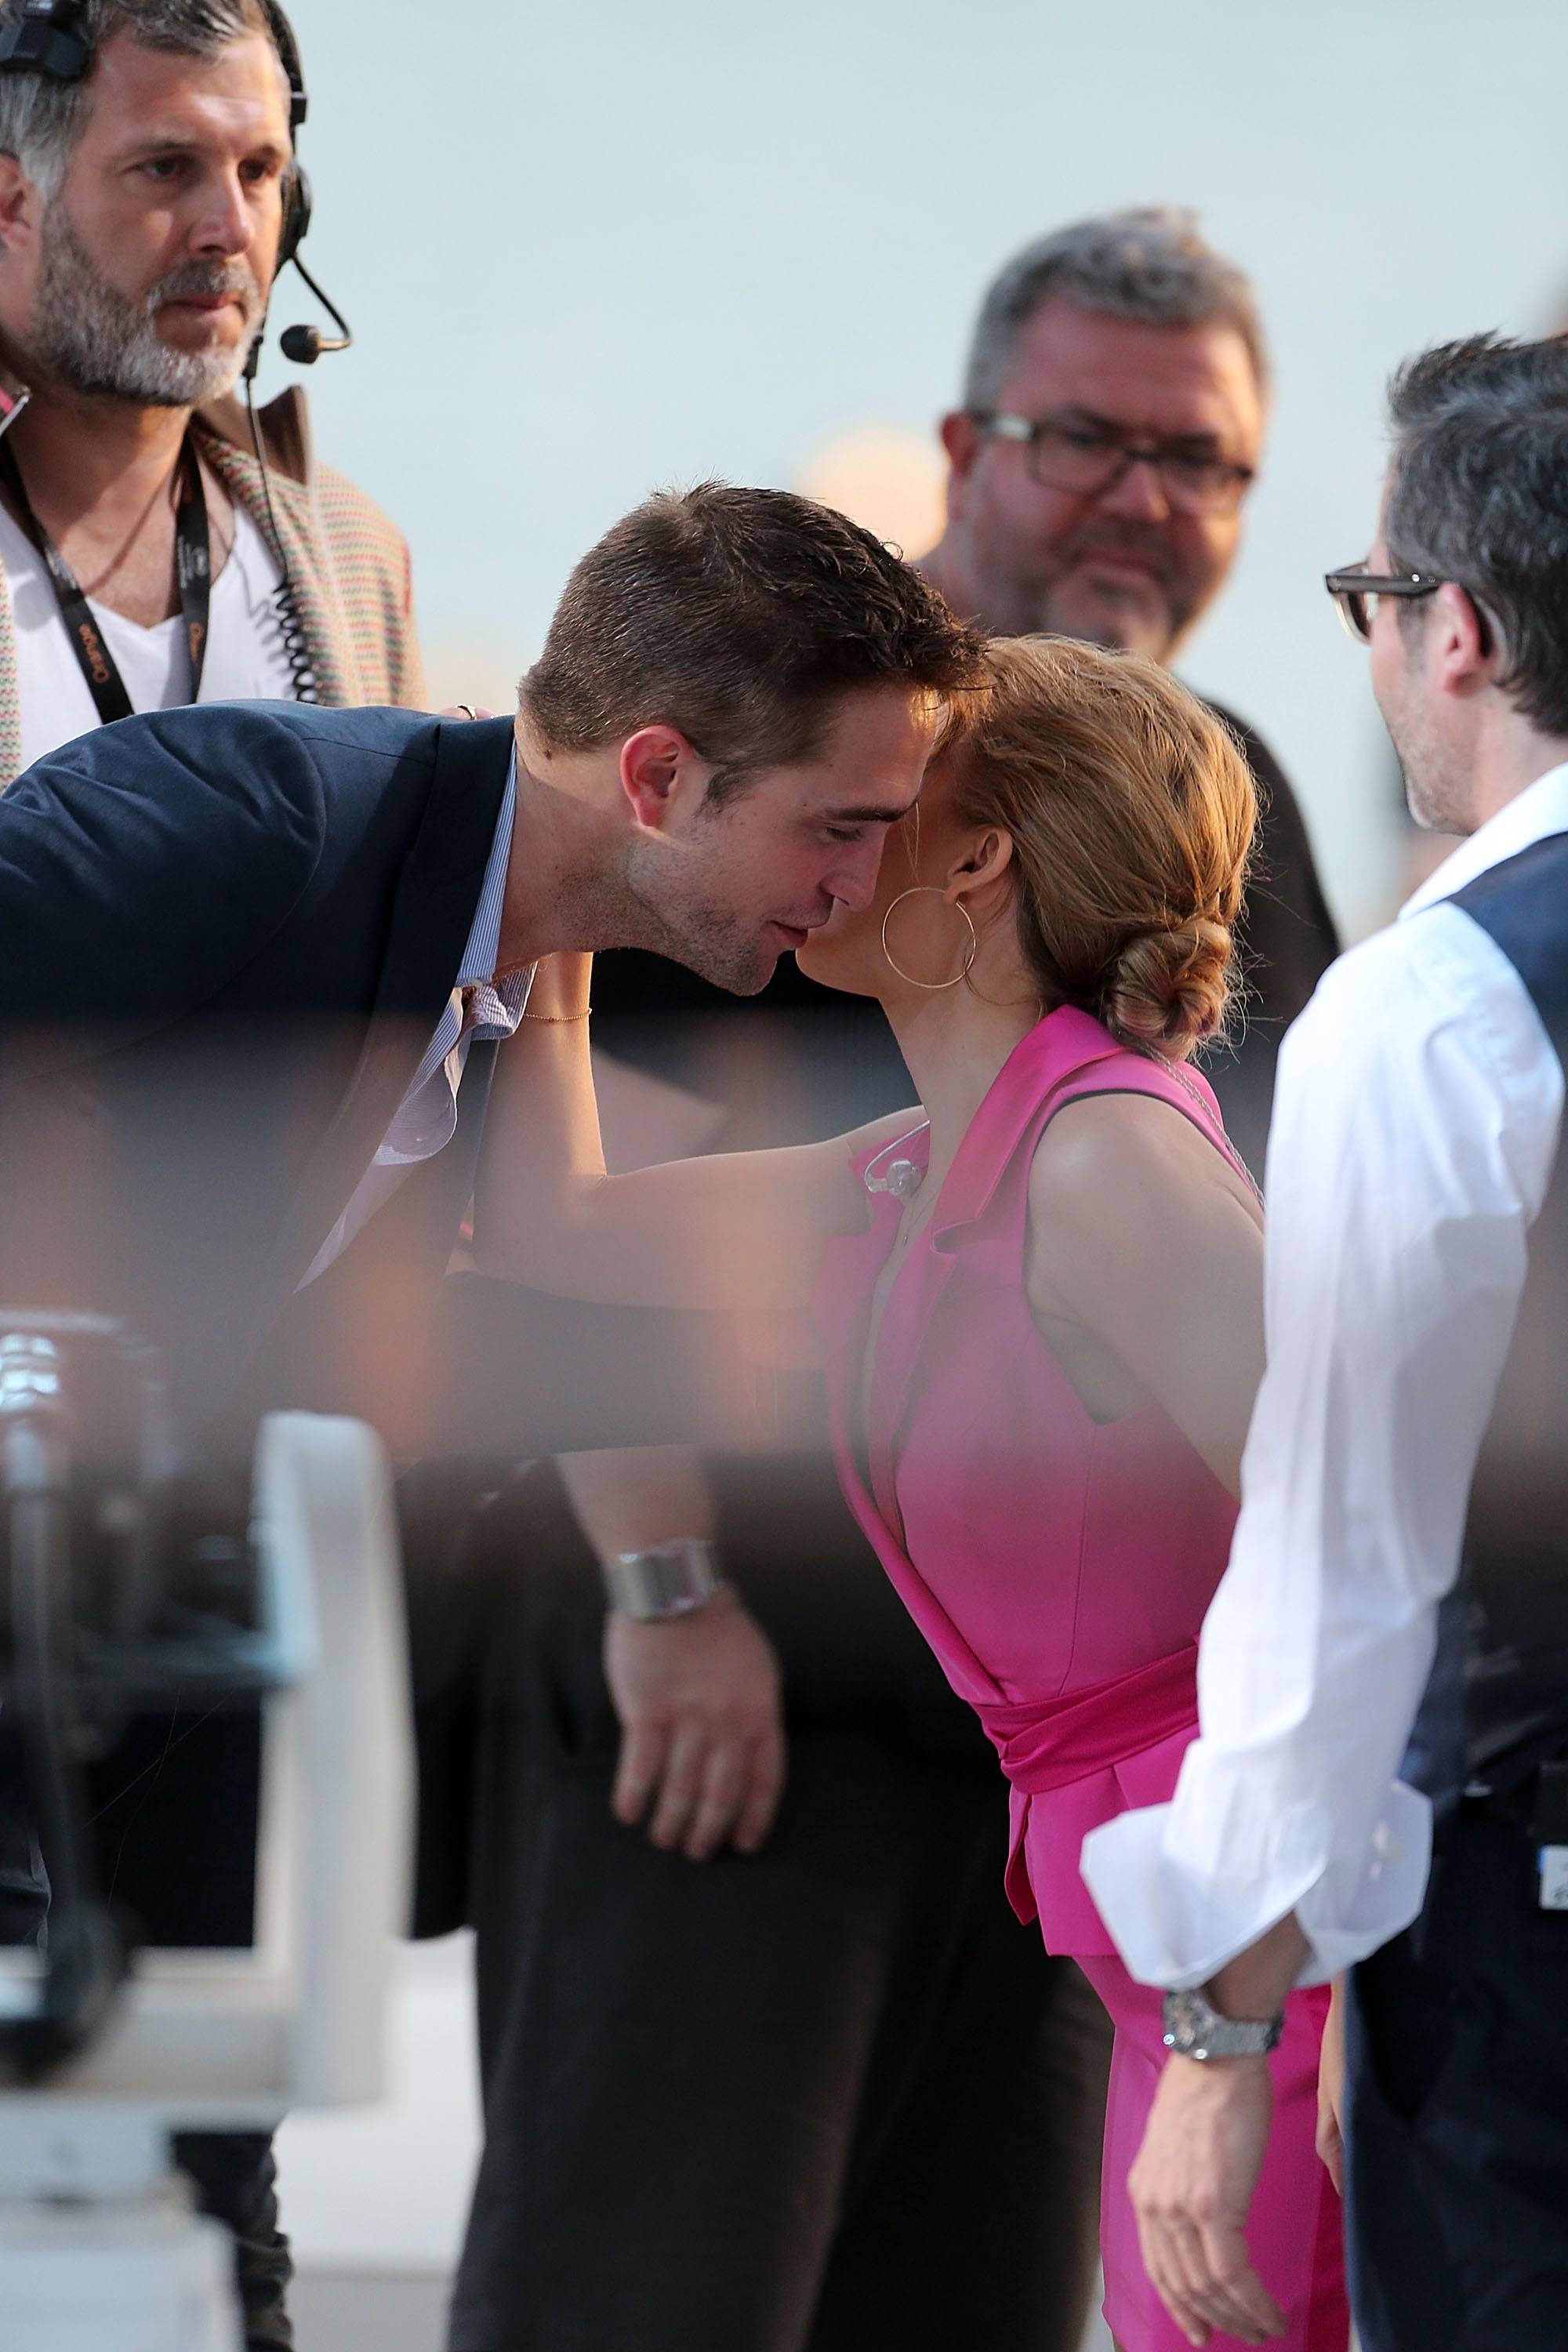 Robert Pattinson Leaves Cannes — but Not Before He Kisses Kylie Minogue